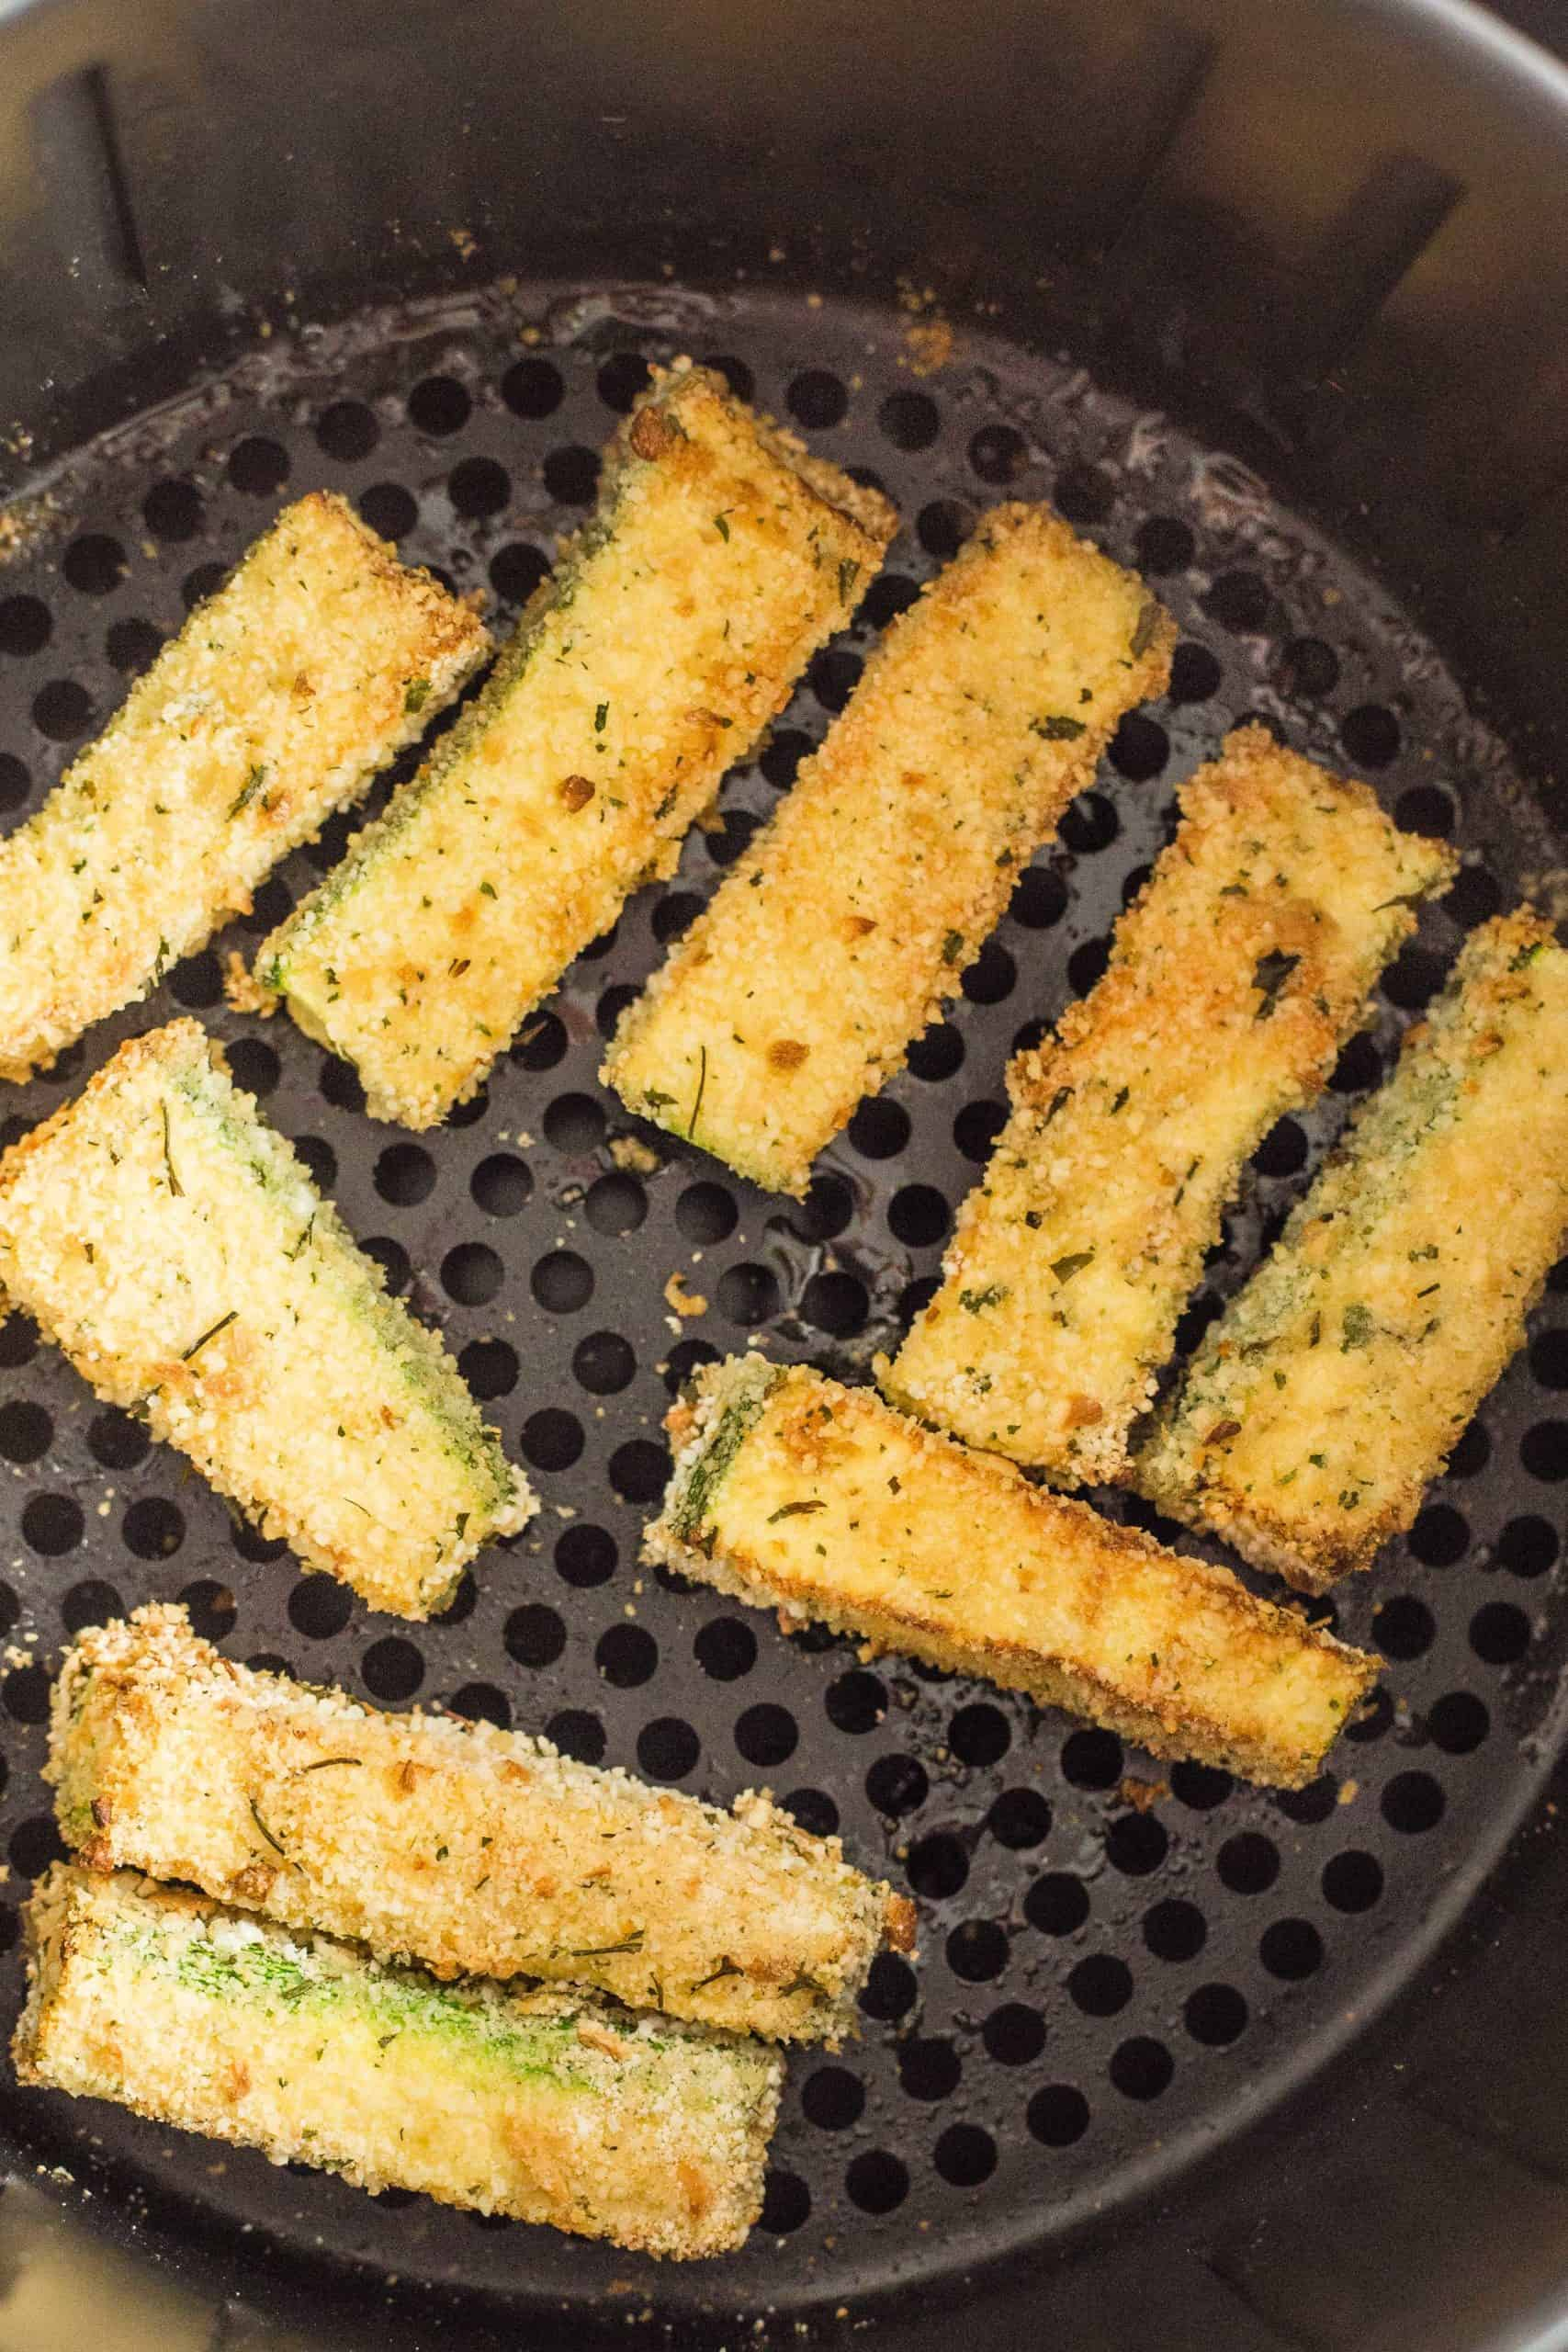 Freshly cooked zucchini fries in an air fryer basket.